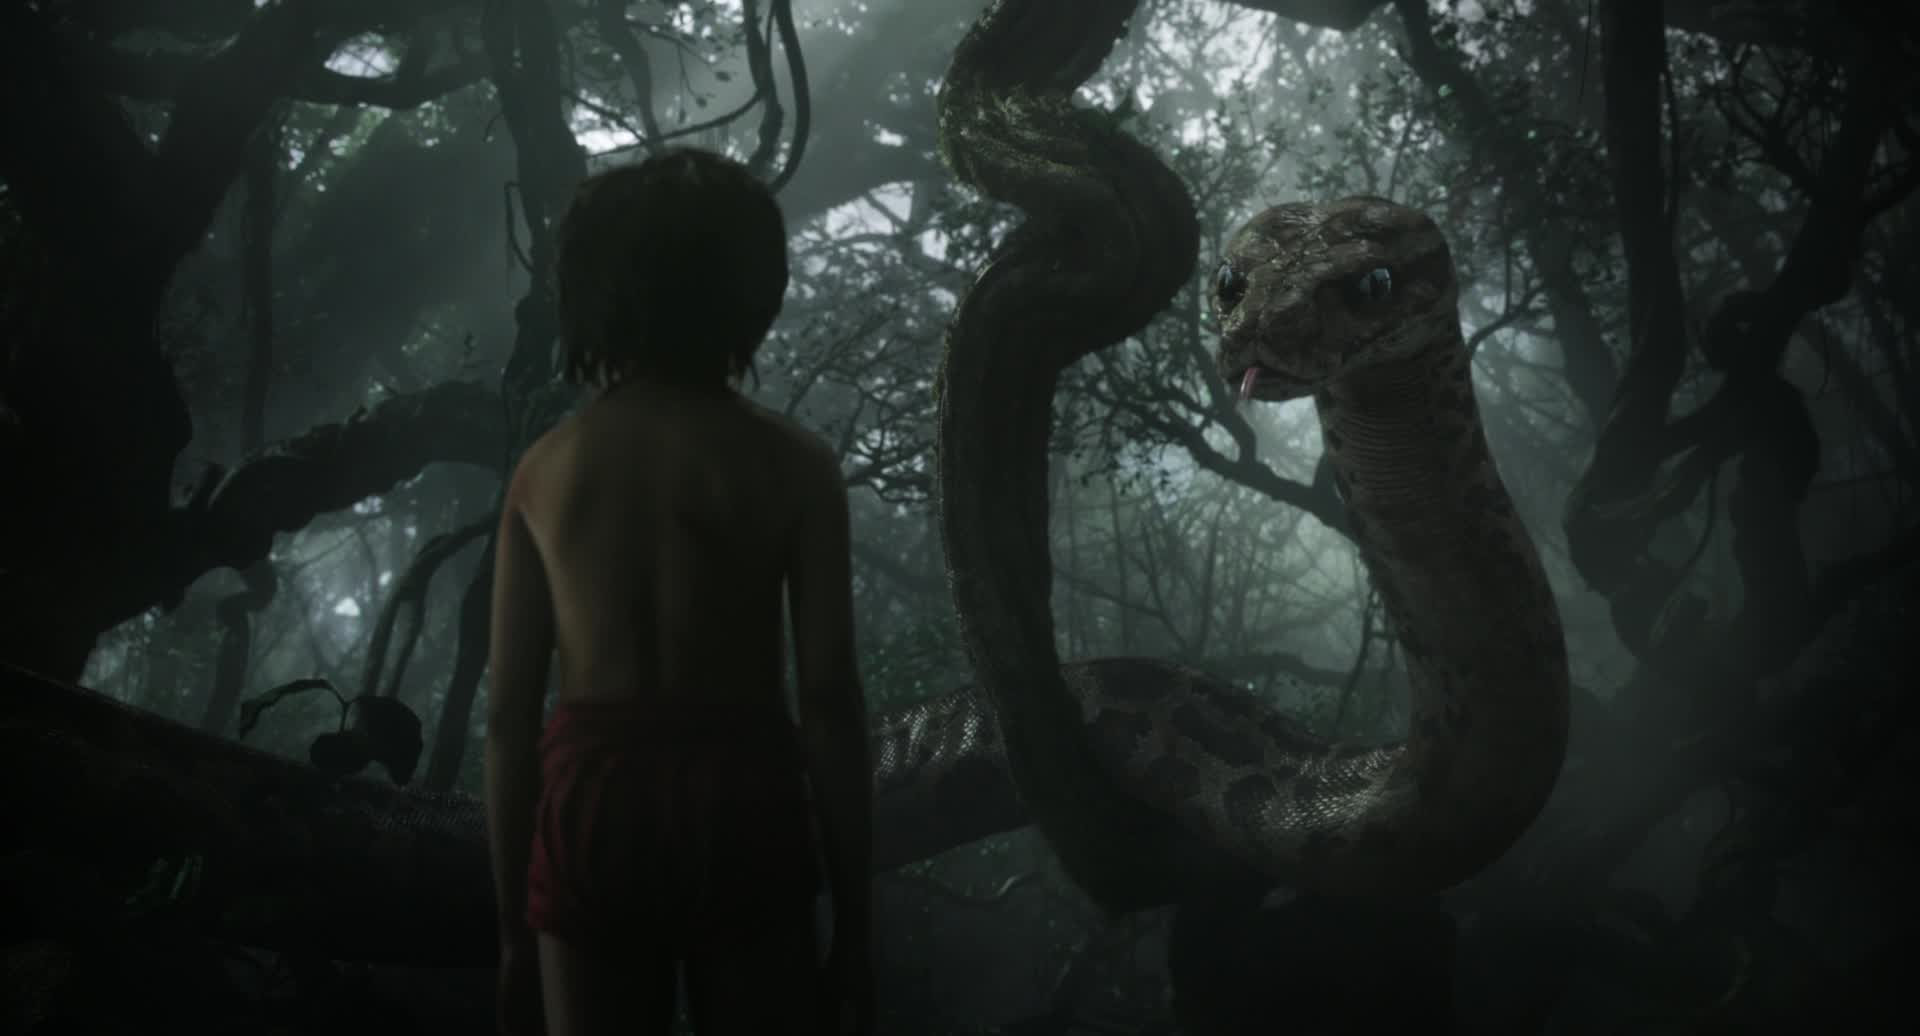 the jungle book themes The empire and its glories were the themes also in mason's the four feathers, a novel set in sudan and another film the korda brothers made elephant boy, made by the kordas in 1937, was based on another story in the jungle book, titled toomai and the elephants sabu dastagir, one of the first indian.